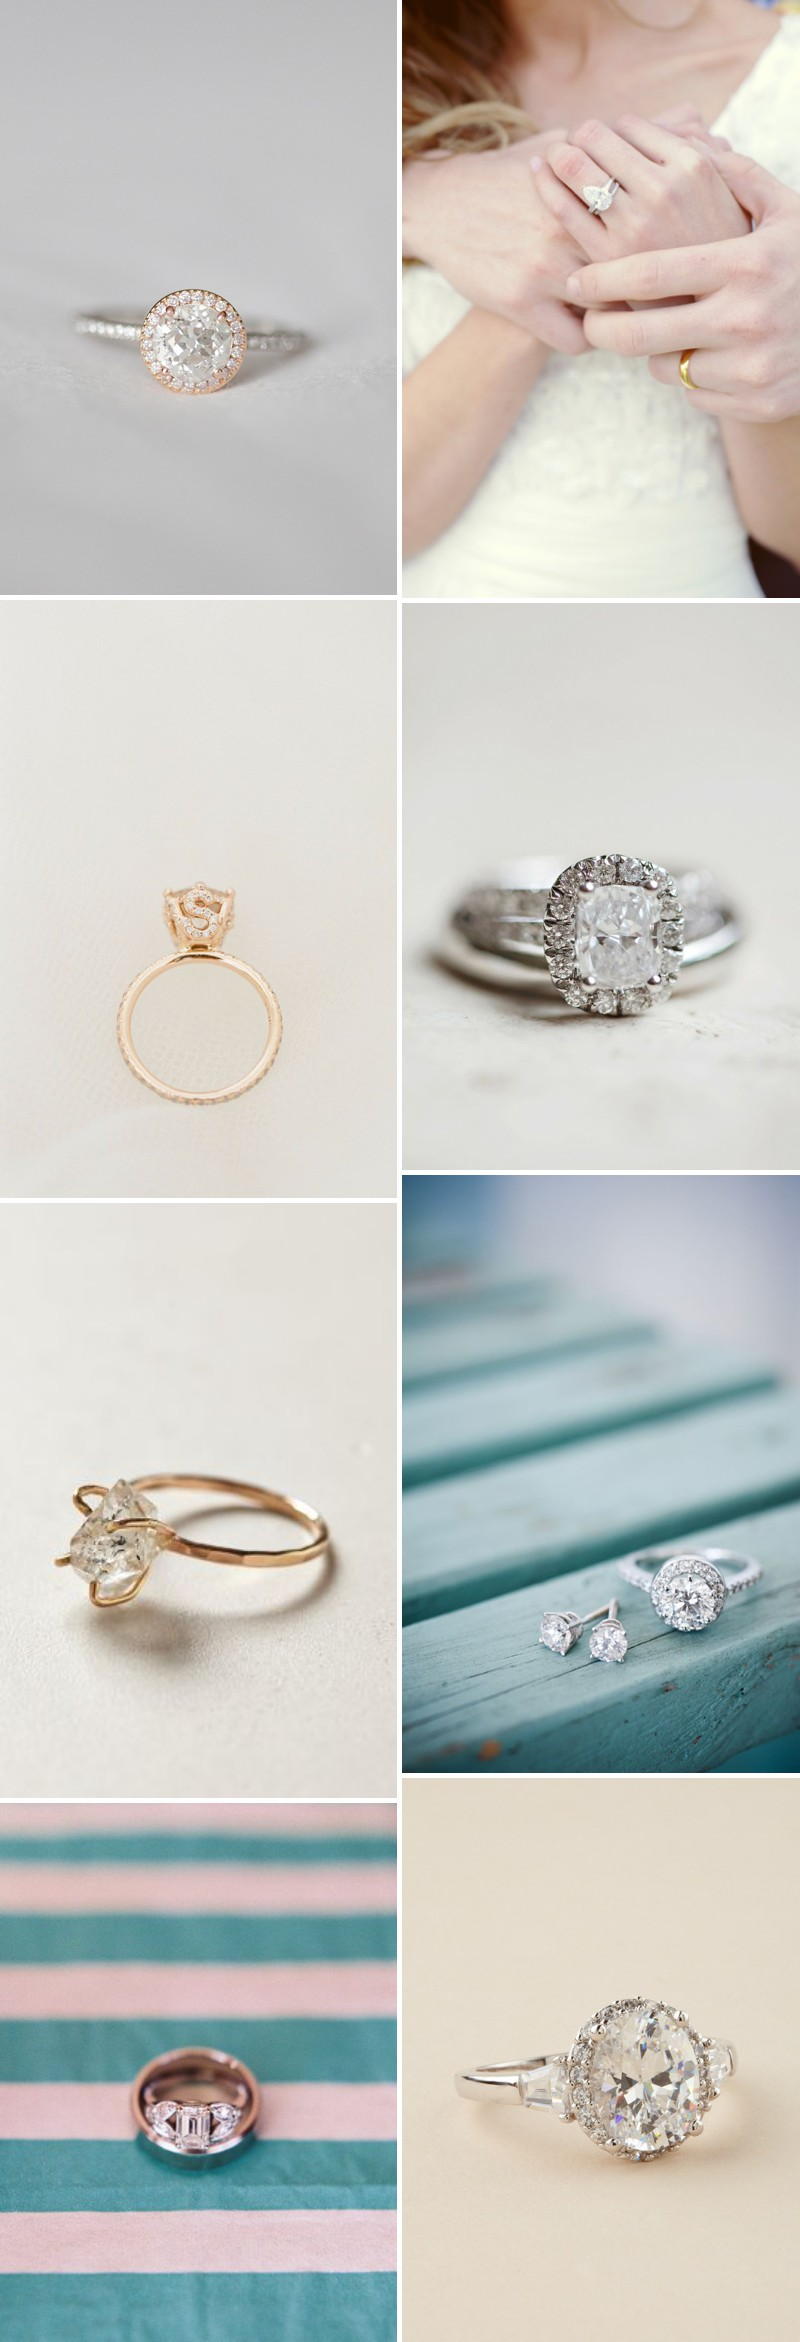 A Beautiful Engagement Ring Discussion And Inspiration Post With Diamonds And Antique Rings._0001